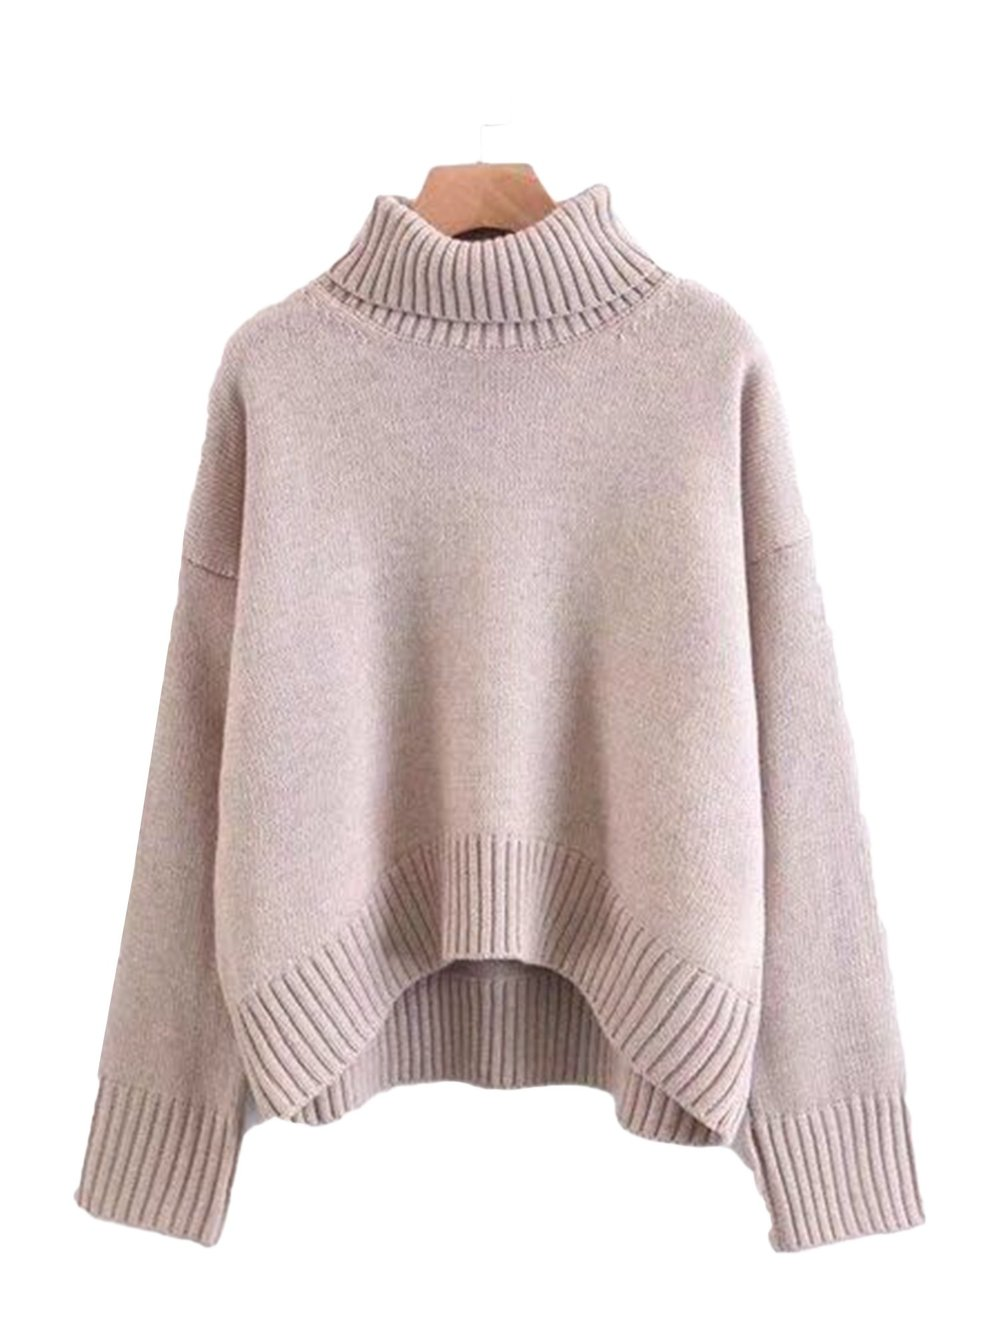 https://www.goodnightmacaroon.co/collections/new-arrivals/products/anjay-turtleneck-ribbed-sweater-2-colors